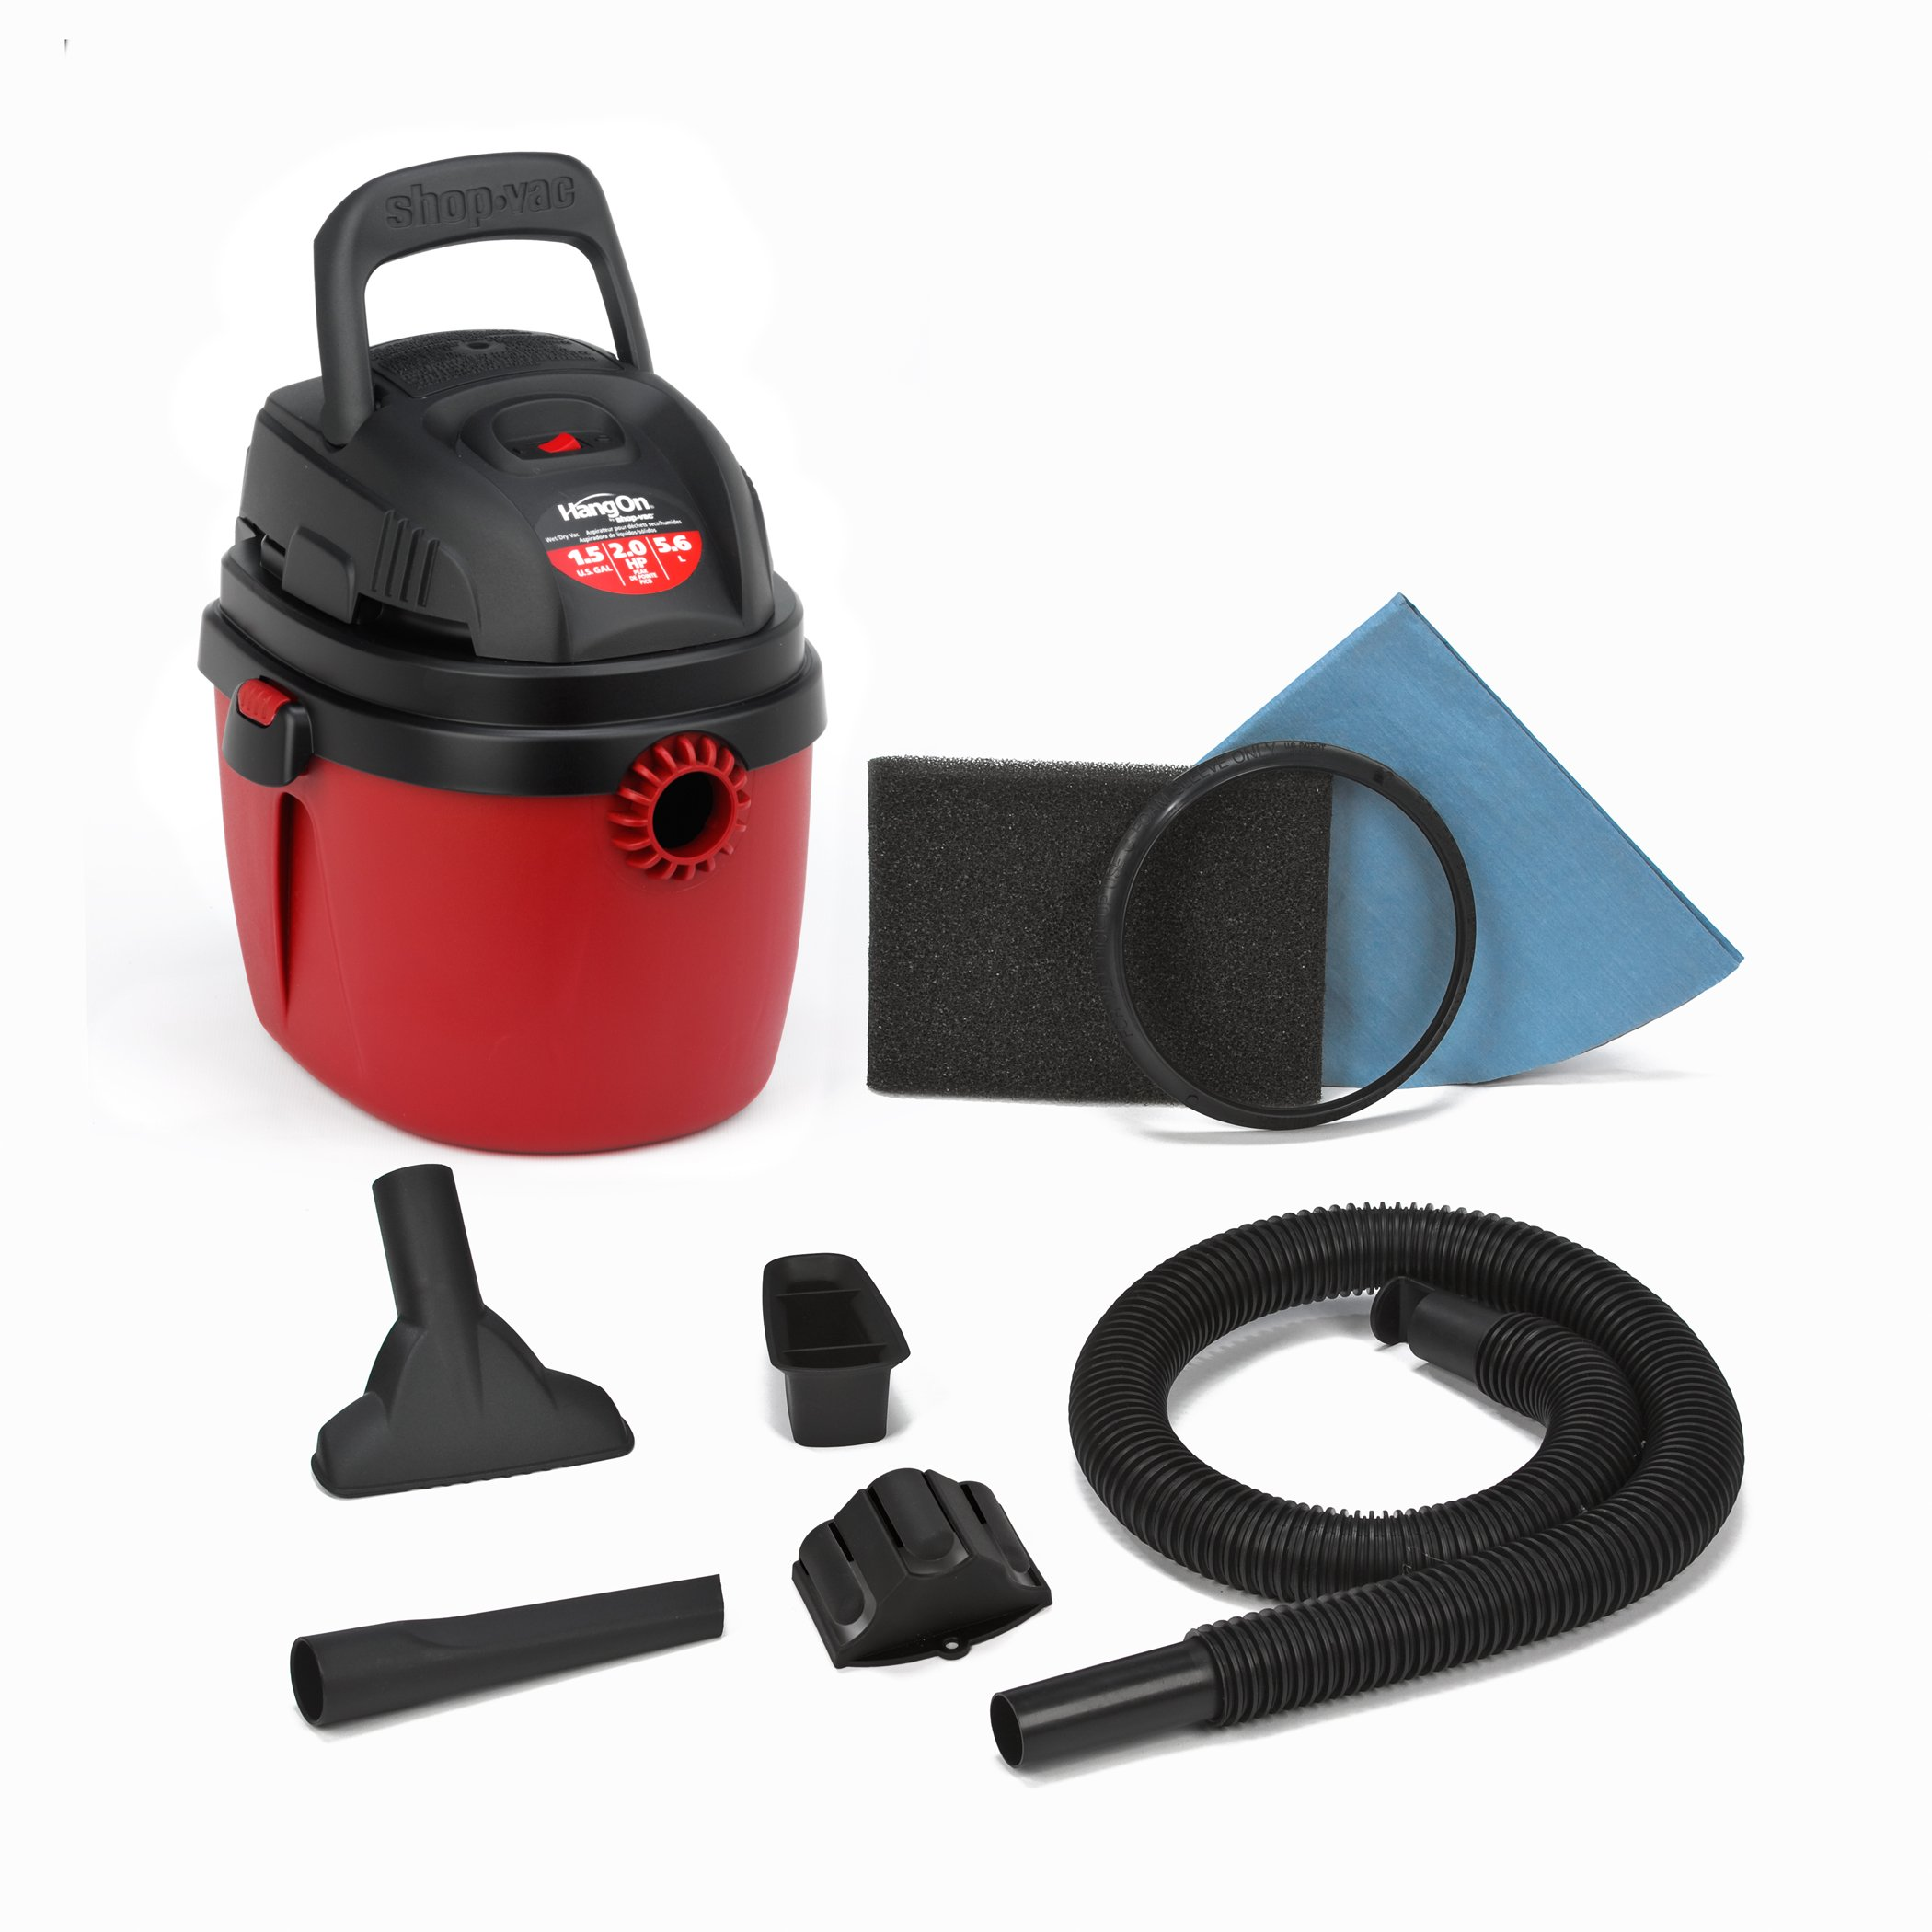 Shop-Vac 2030100 1.5-Gallon 2.0 Peak HP Wet Dry Vacuum Small Red/Black by Shop-Vac